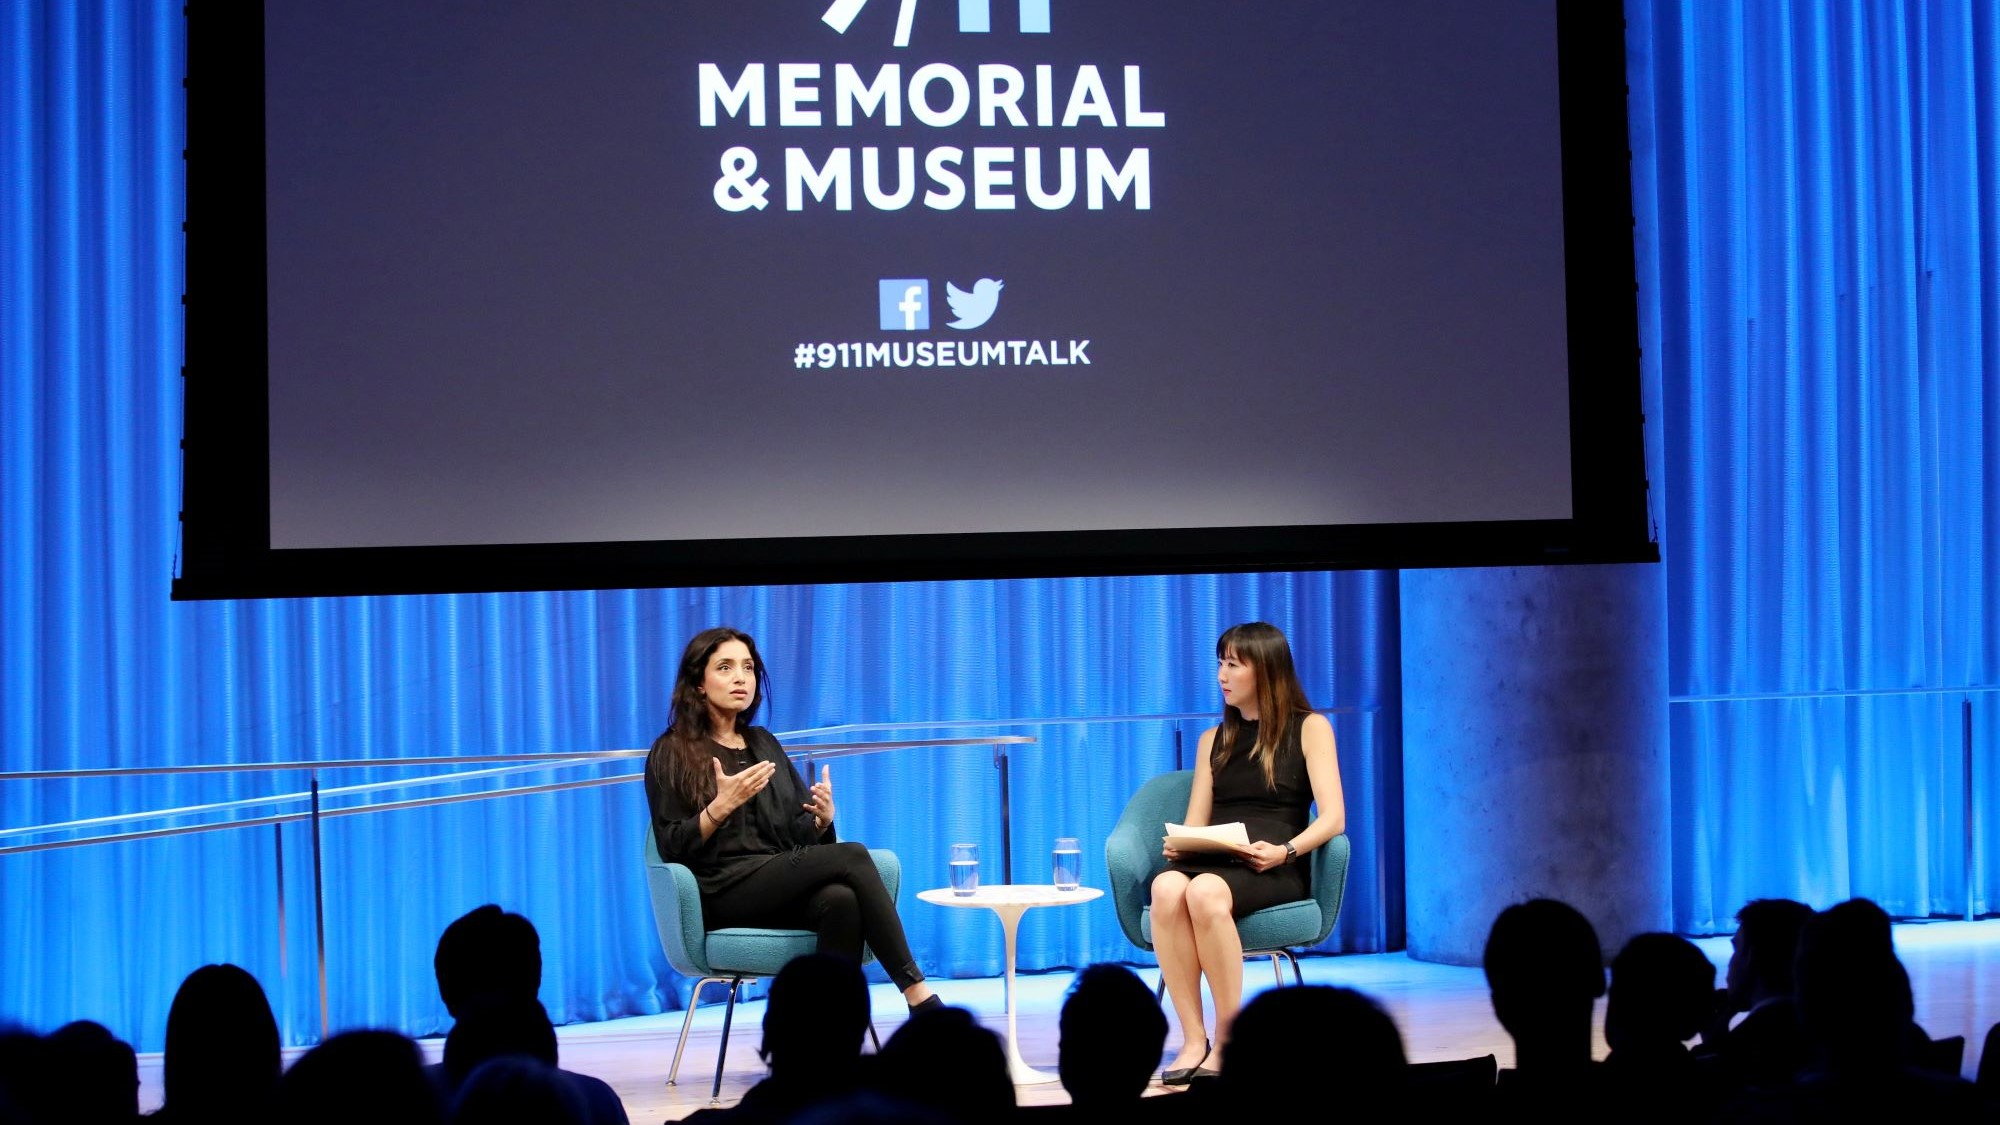 Emmy Award–winning documentarian Deeyah Khan speaks with a woman onstage during a public program at the Museum Auditorium. Khan gestures with both hands as she looks out towards the audience, who are silhouetted by the stage lights. A large projection screen has been lowered above her and the woman hosting the event.